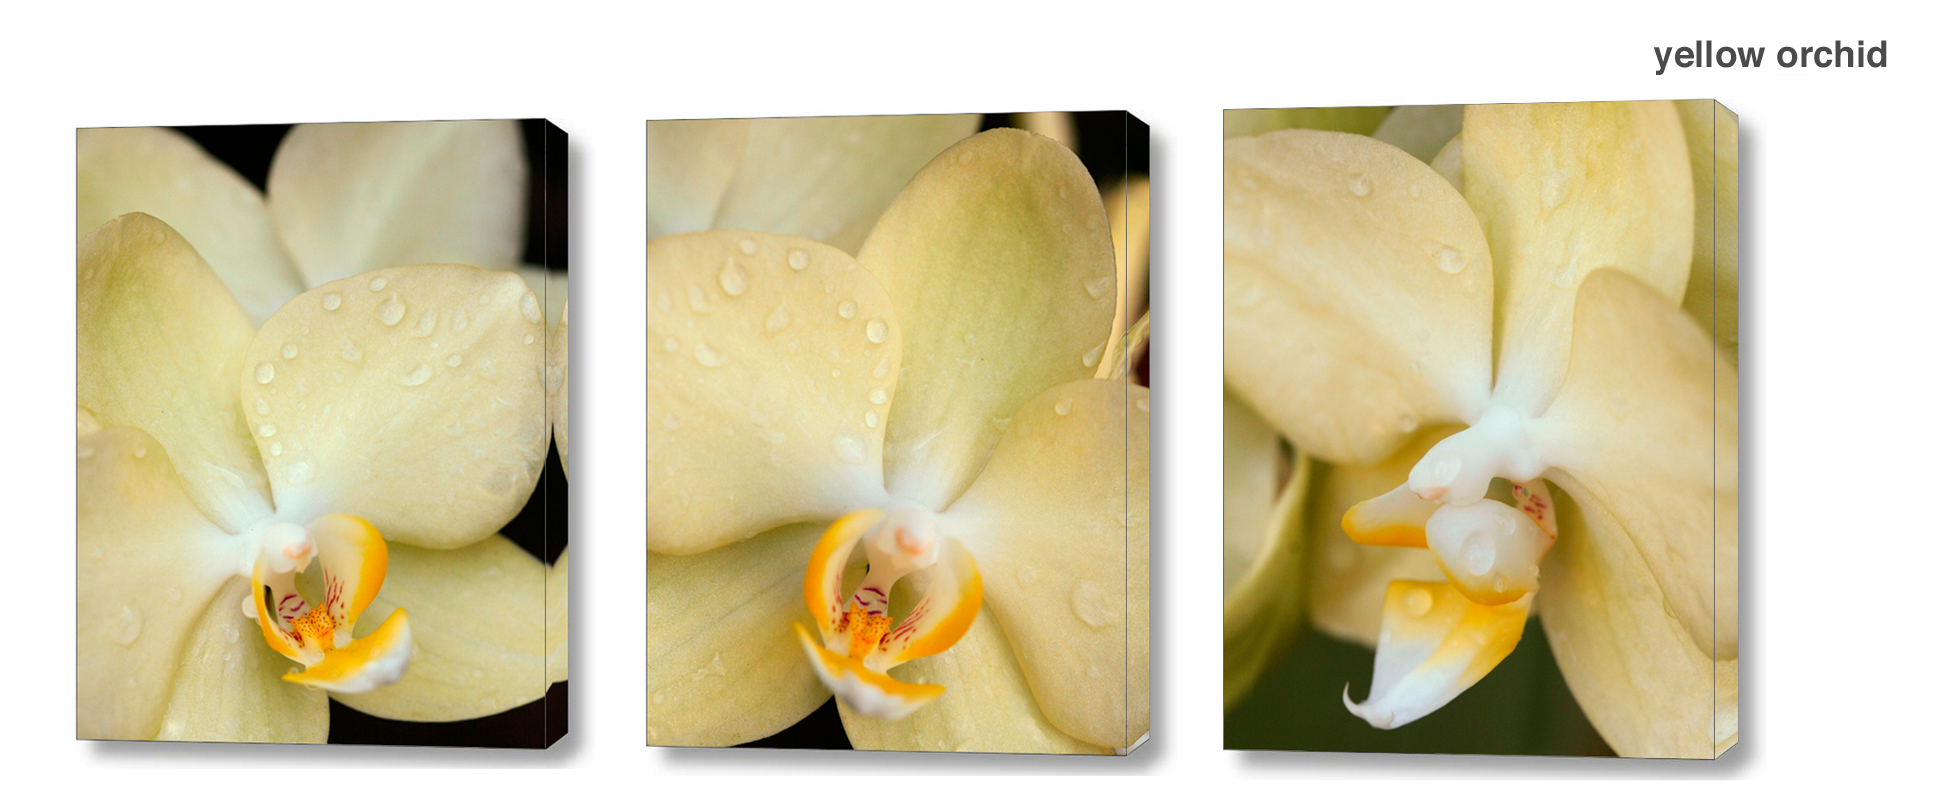 yellow orchid series - Floral Series Wall Decor Macro Photography Matted & Giclée Canvas Prints